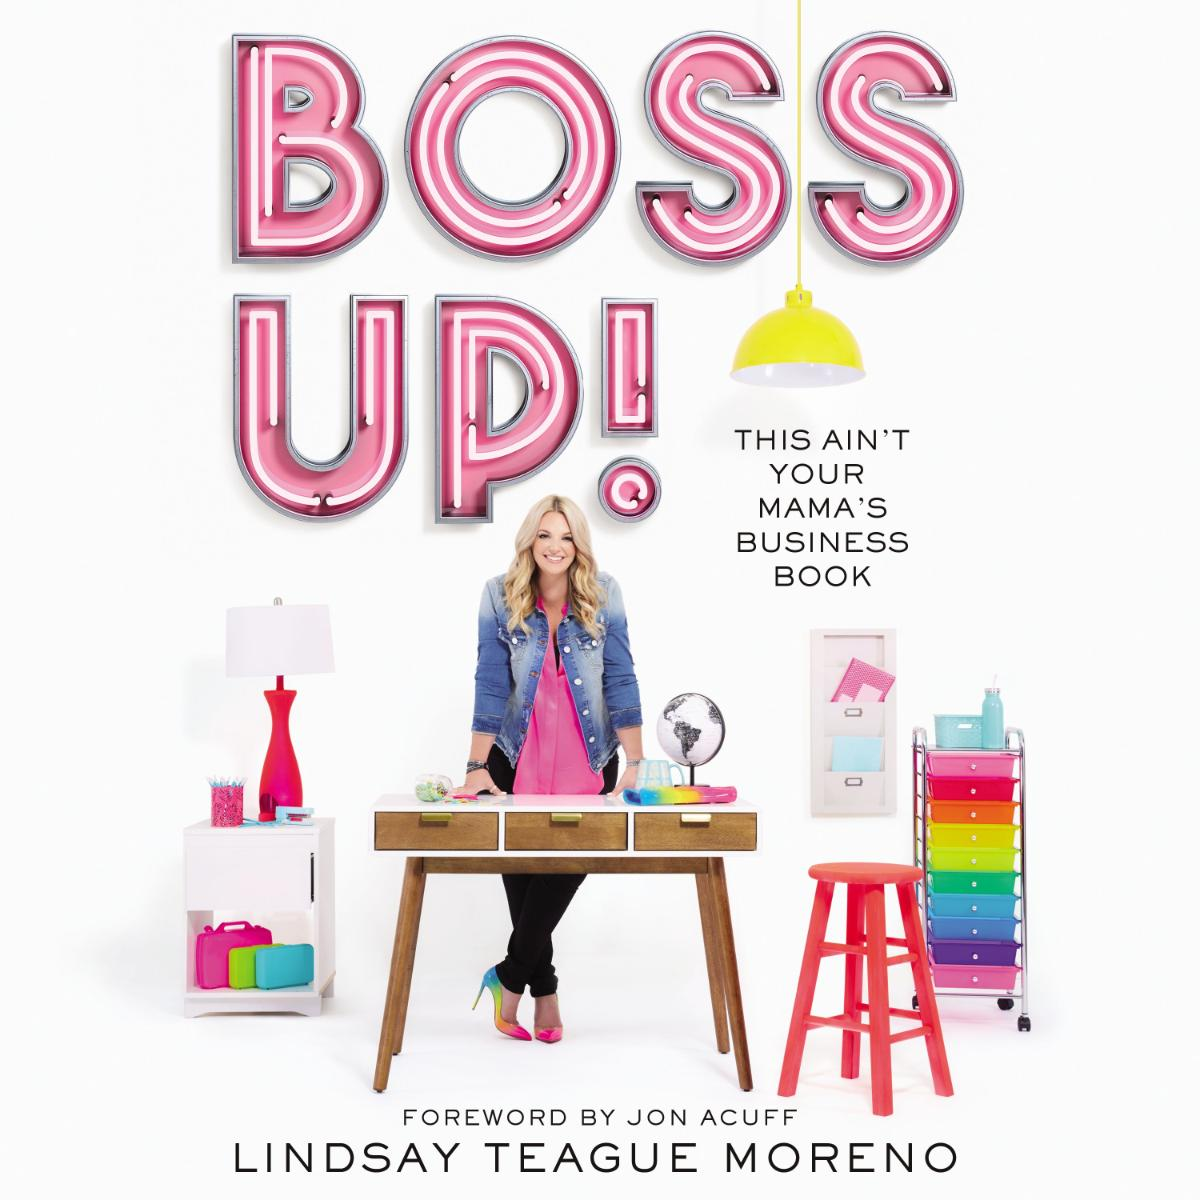 Boss Up Audiobook Pdf Marketing Pages